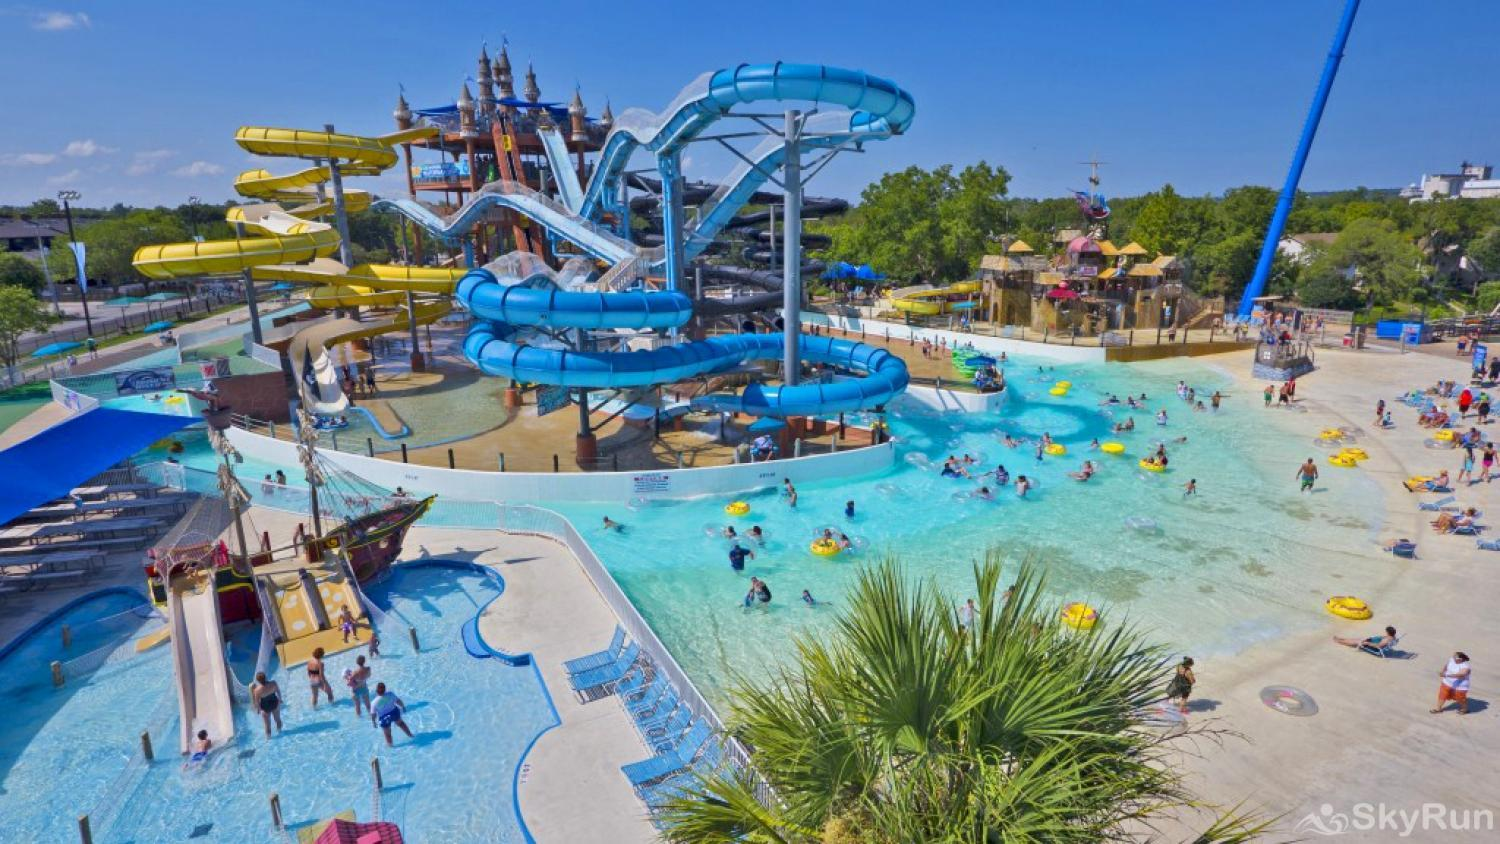 TEXAS ROSE LODGE Schlitterbahn Waterpark, 20 minutes away